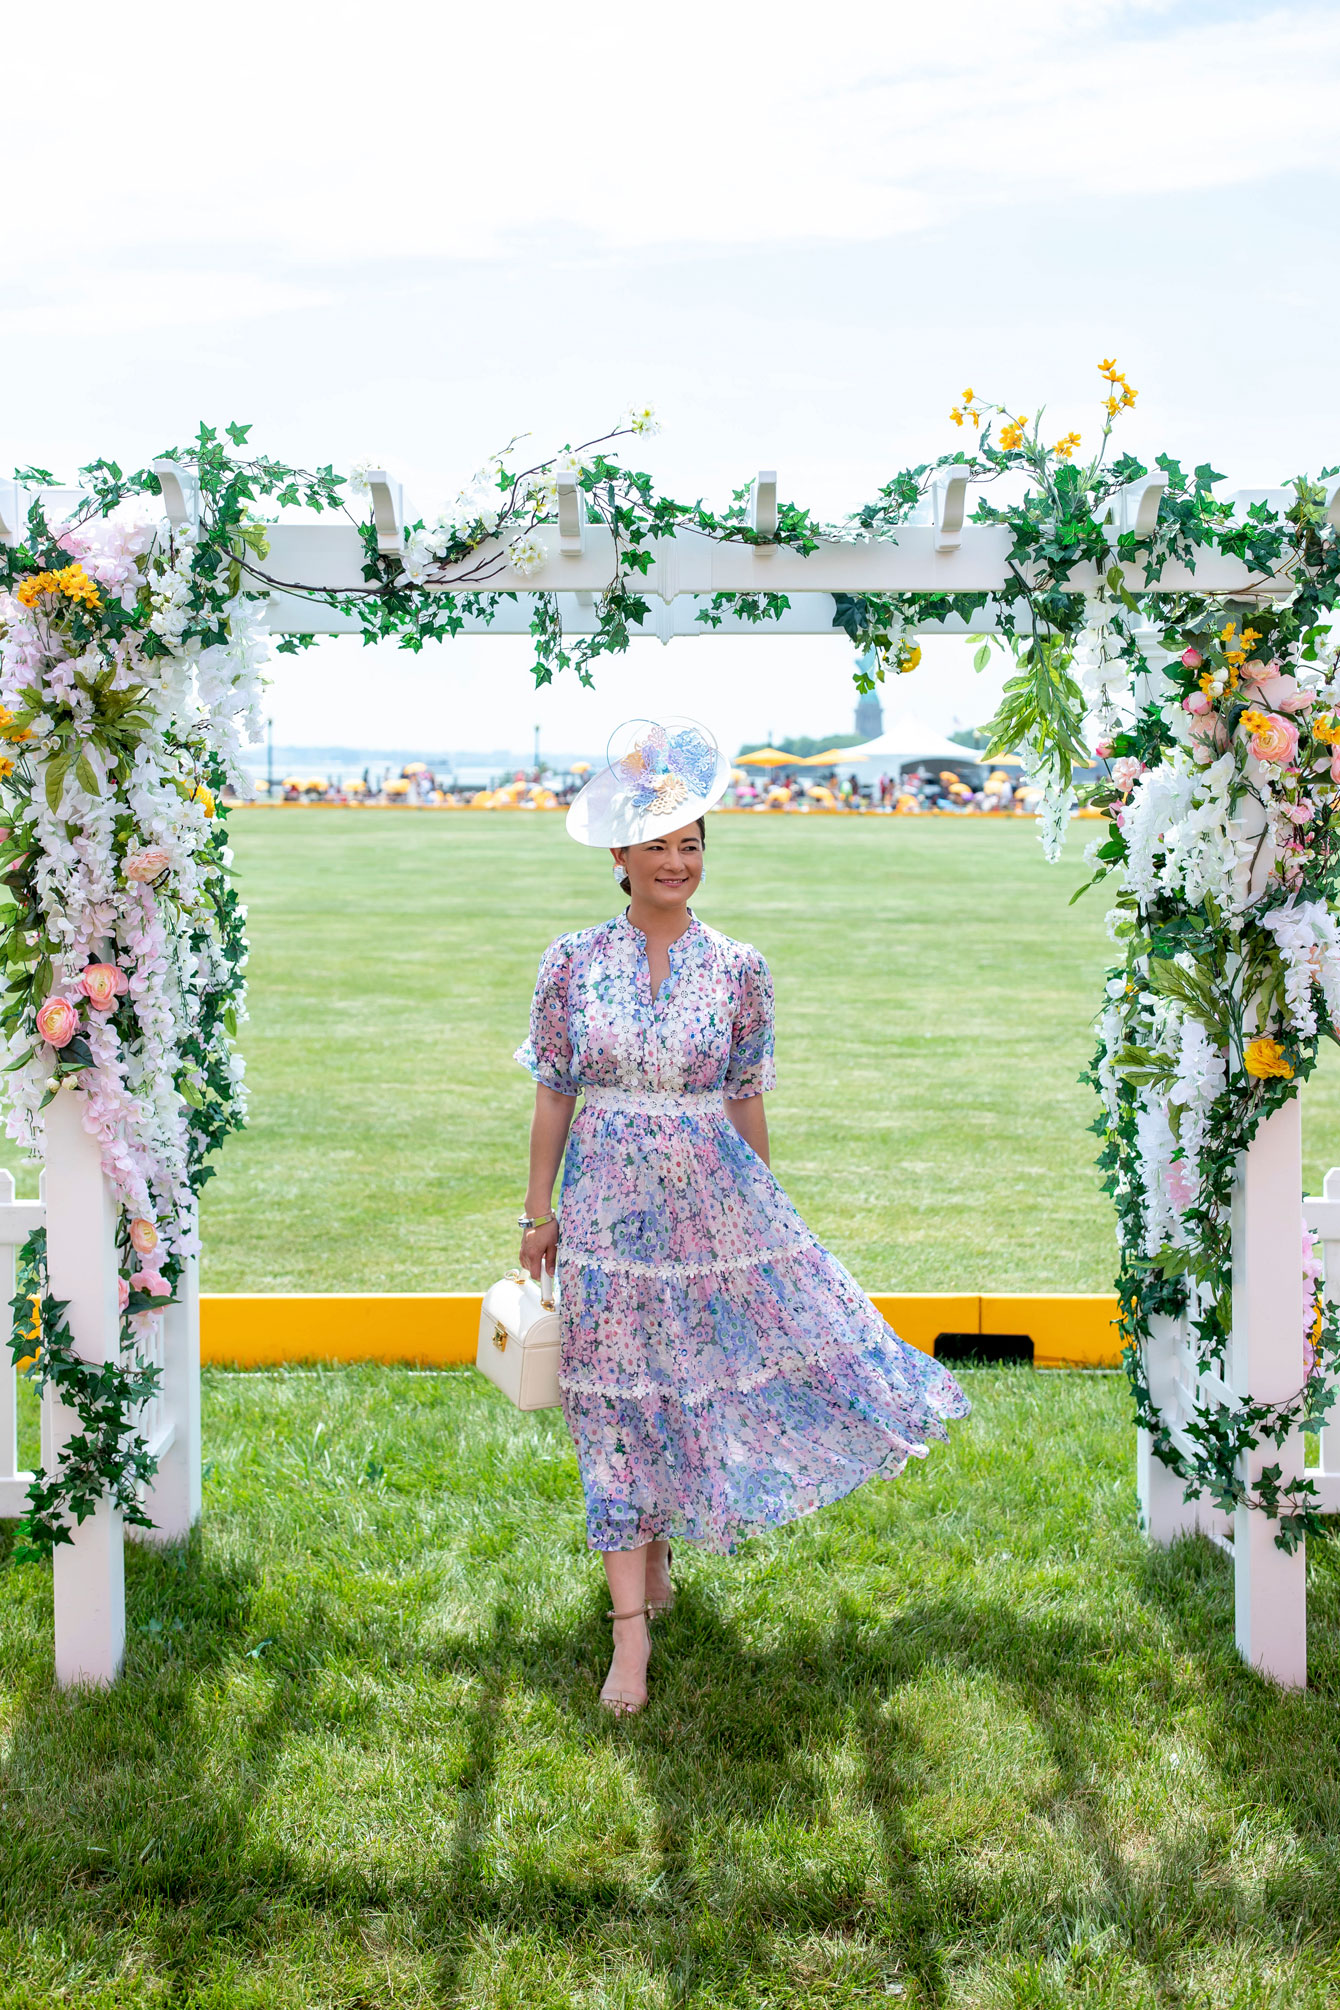 Veuve Clicquot Polo Classic 2018 New York City Nyc - Style -2588